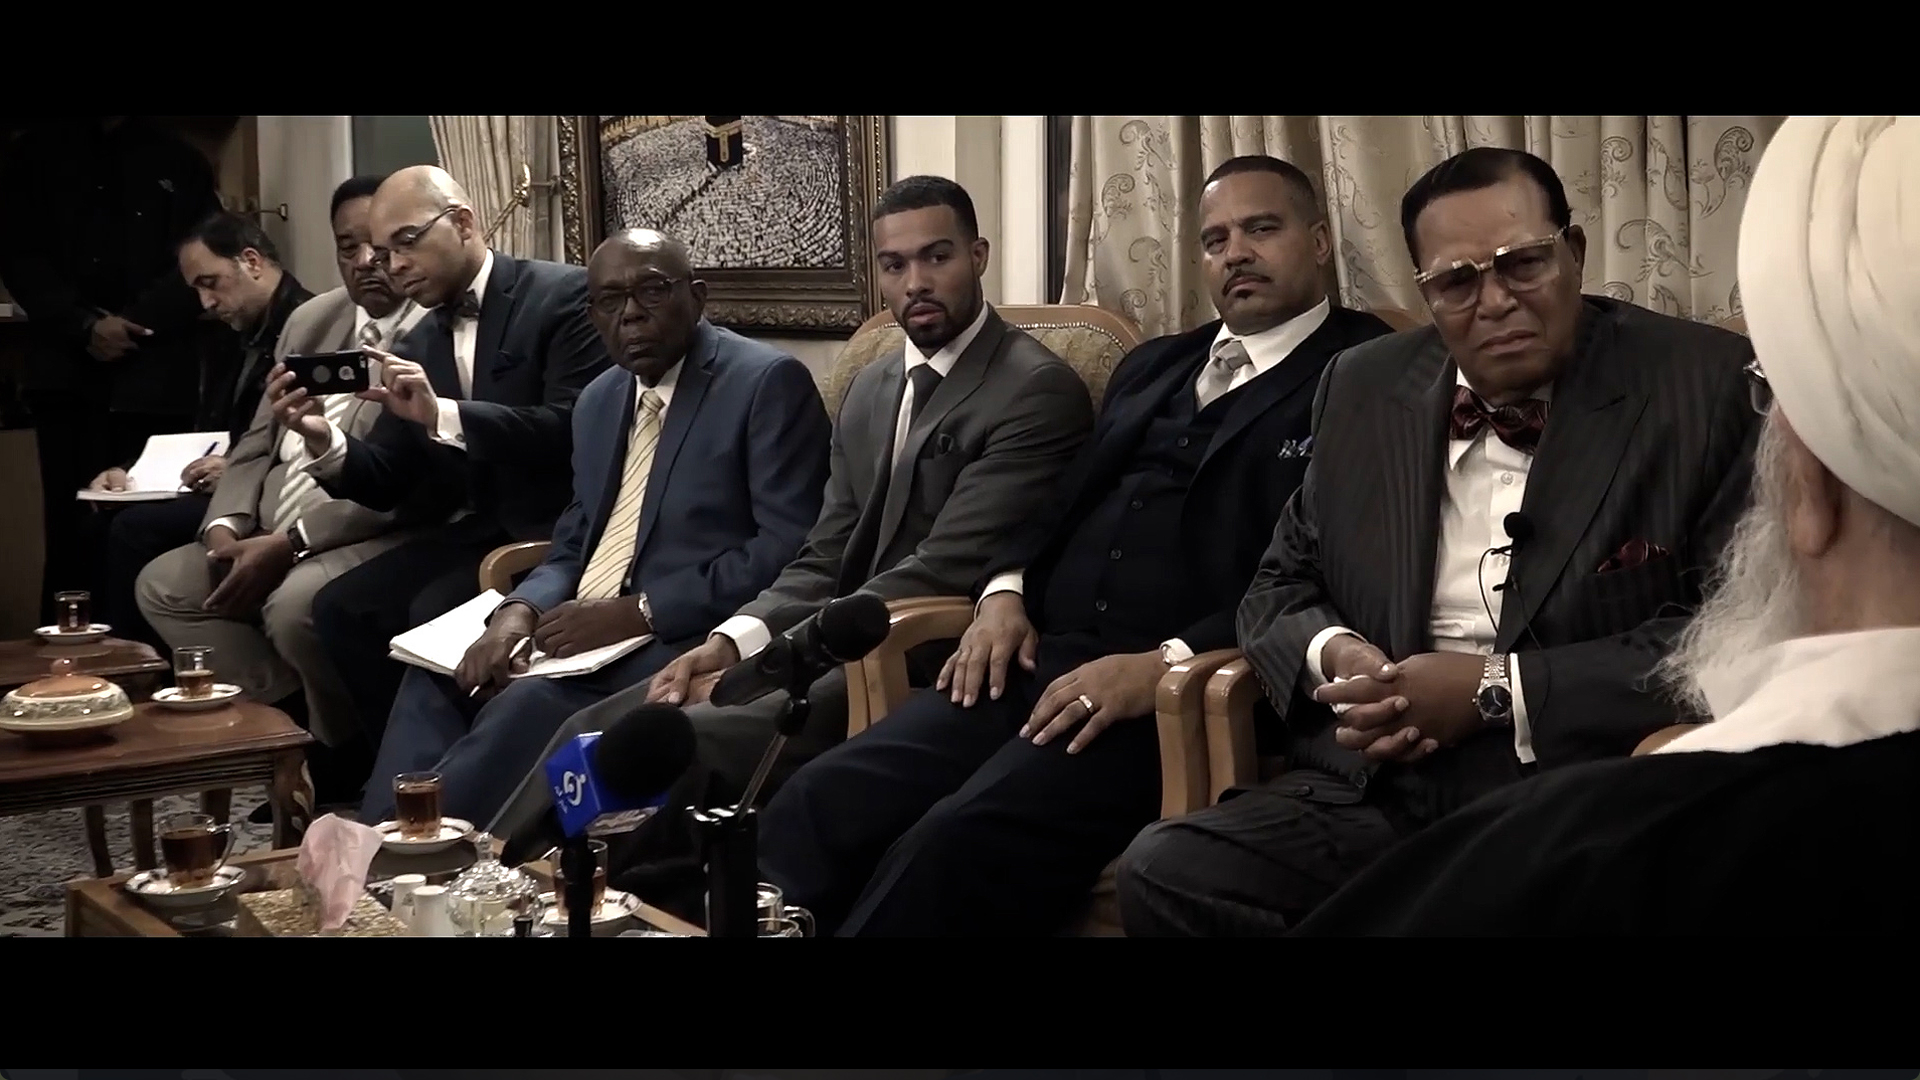 Stand Firm: A documentary of Minister Farrakhan visiting Iran